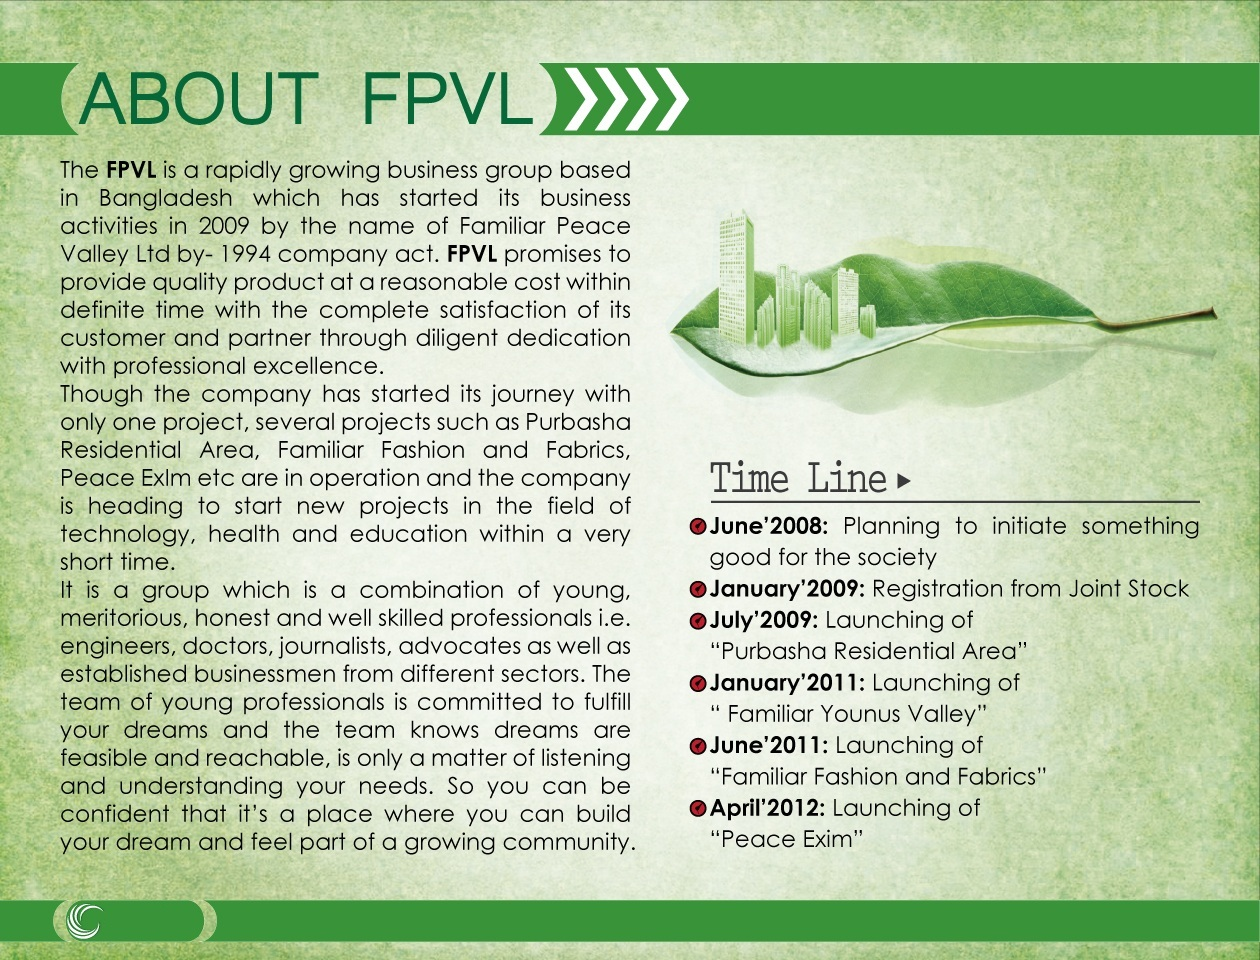 About FPVL